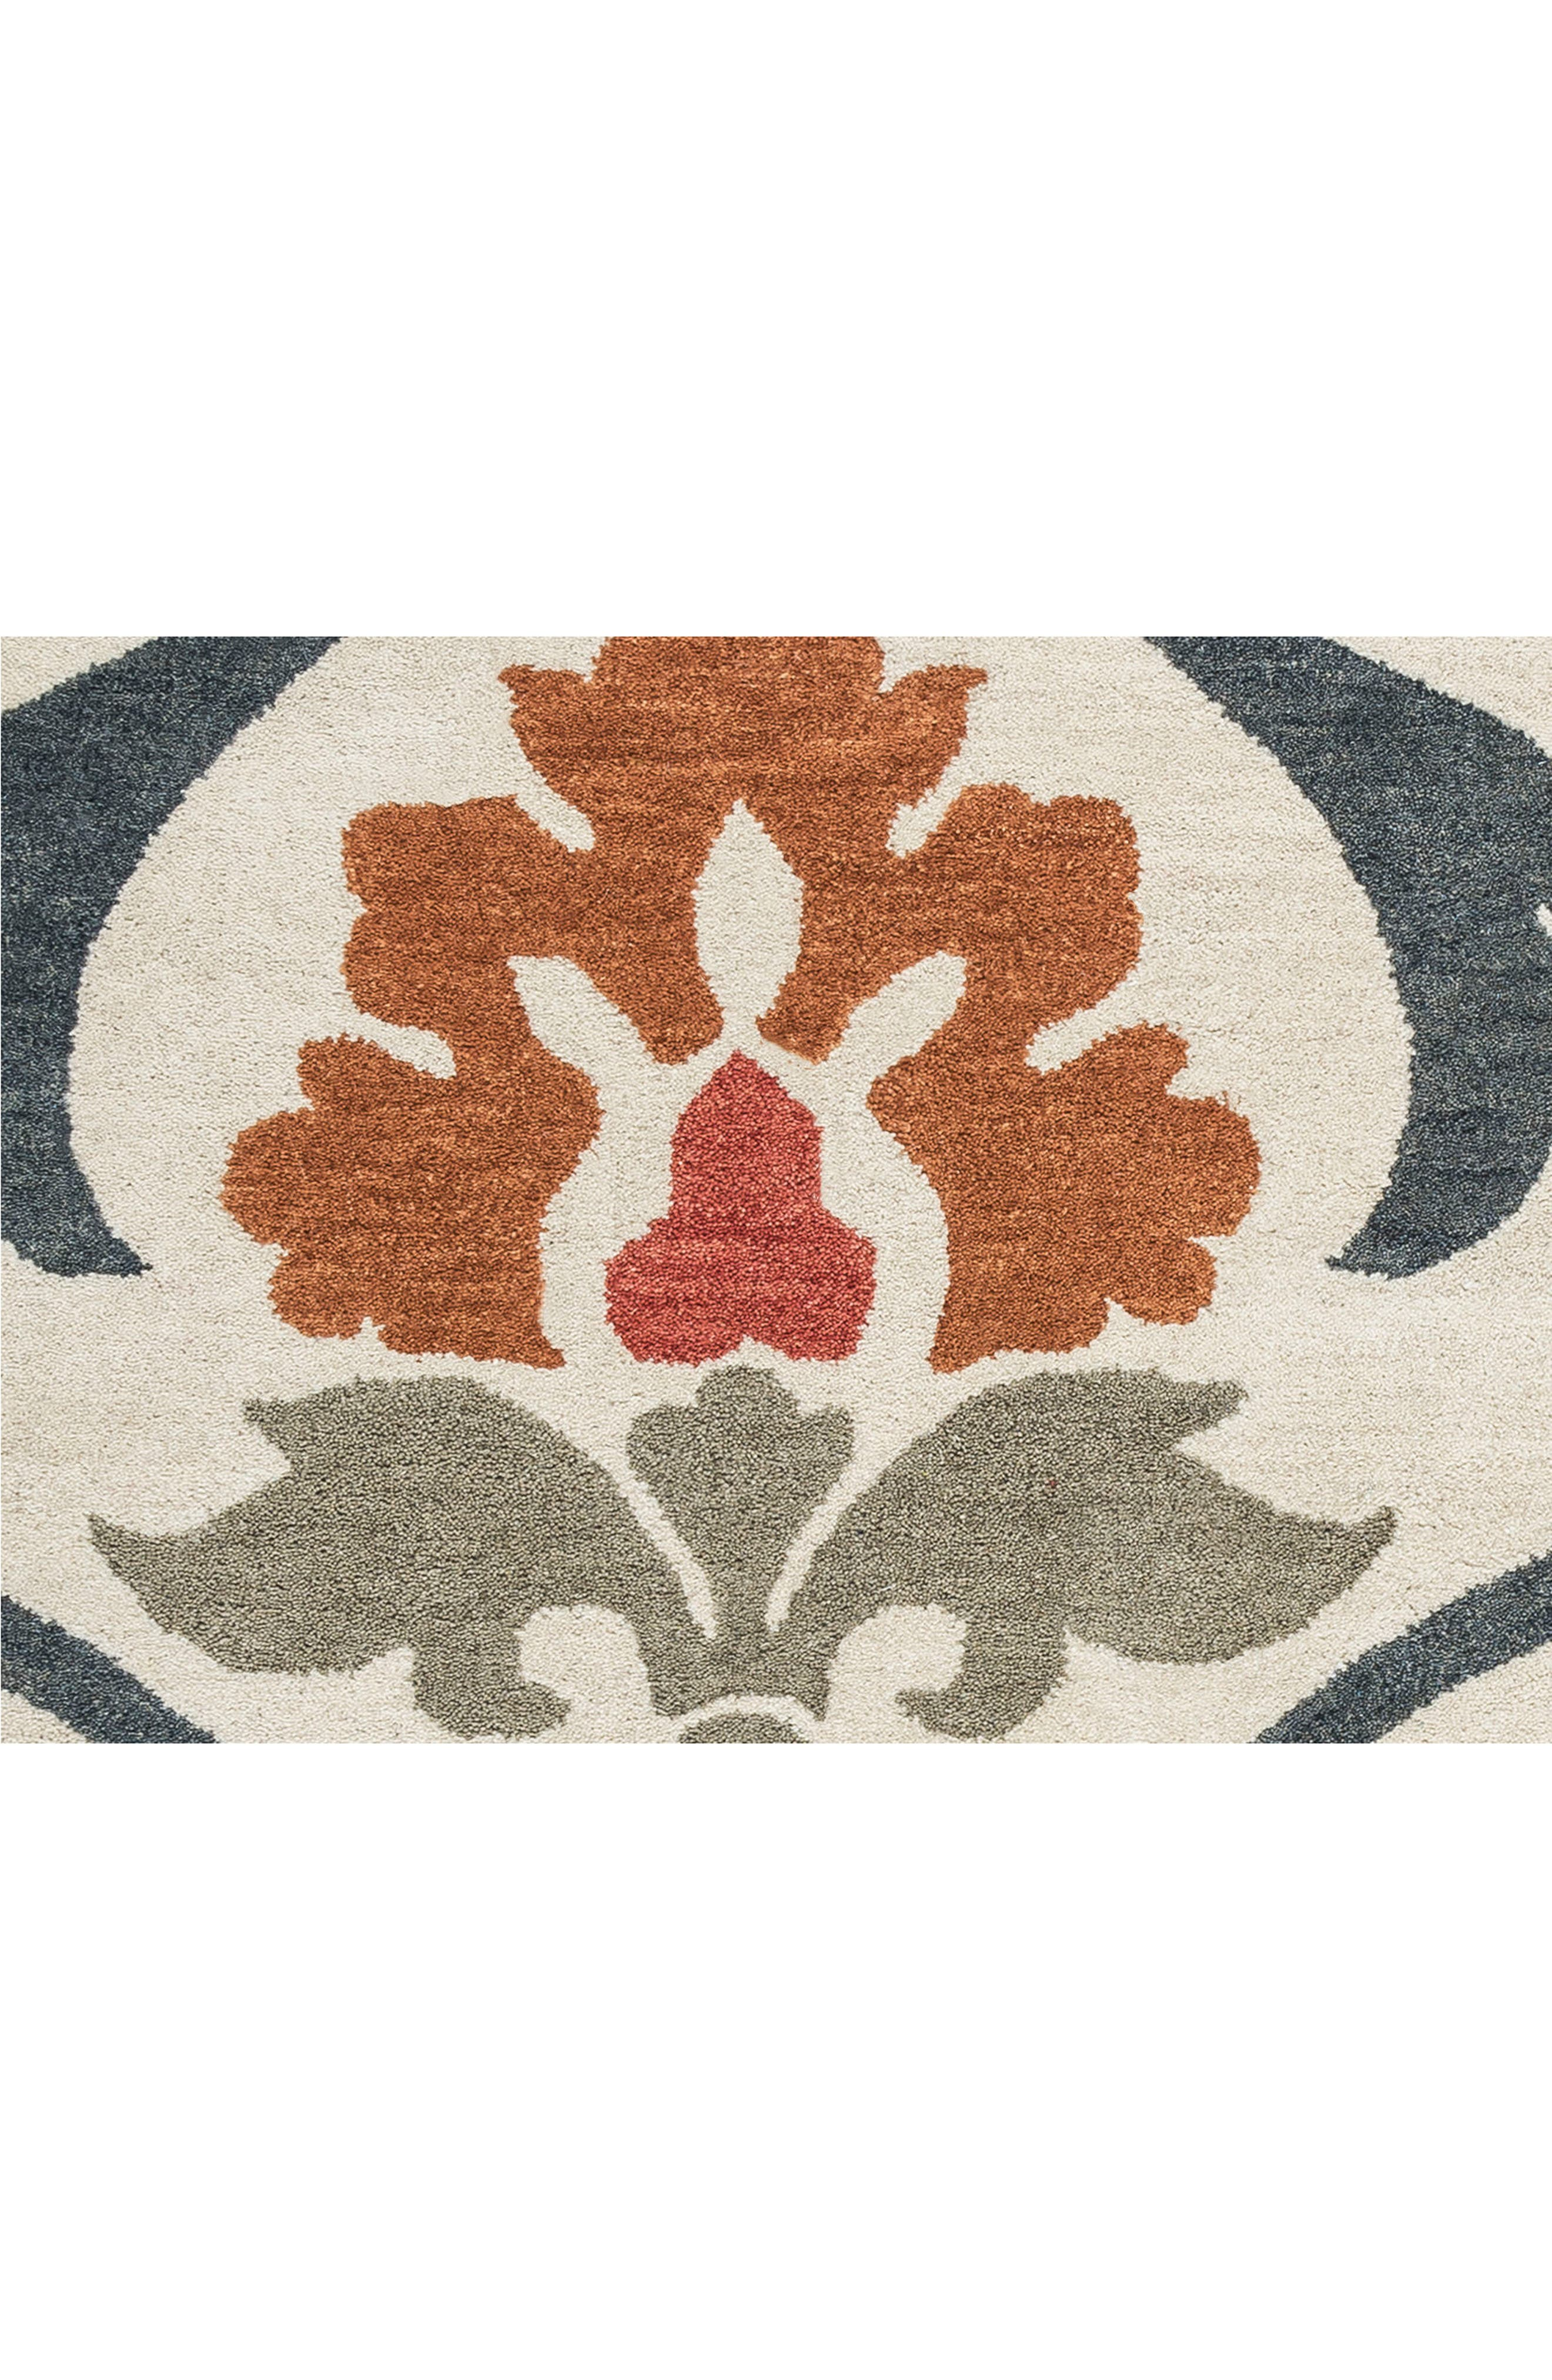 Zoe Hand Tufted Wool Area Rug,                             Alternate thumbnail 4, color,                             900